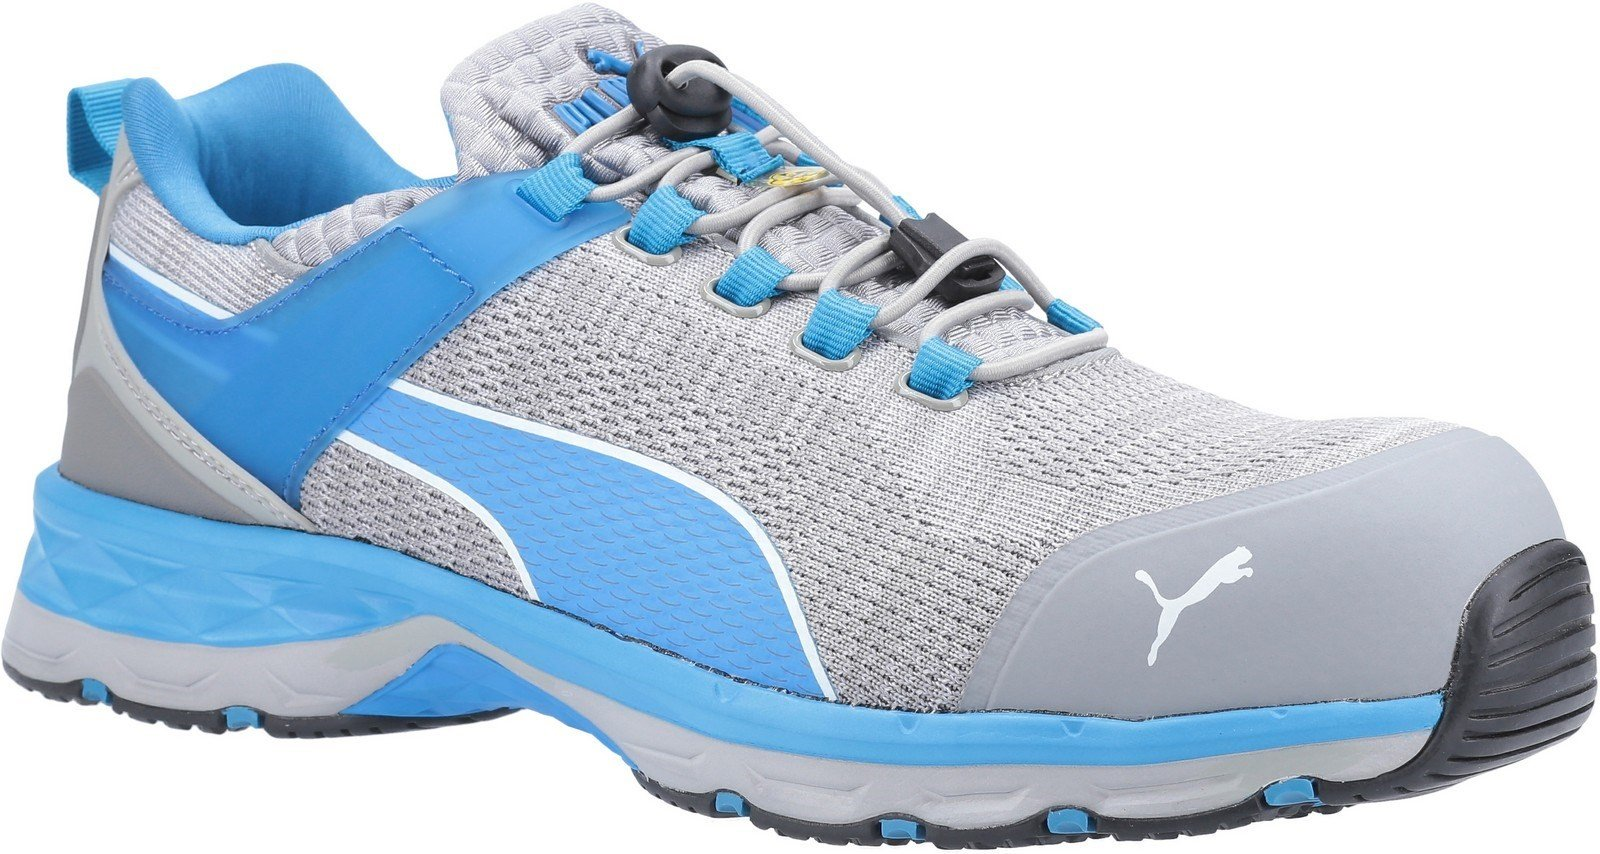 Puma Safety Unisex Xcite Low Toggle Trainer Various Colours 29981 - Grey/Blue 6